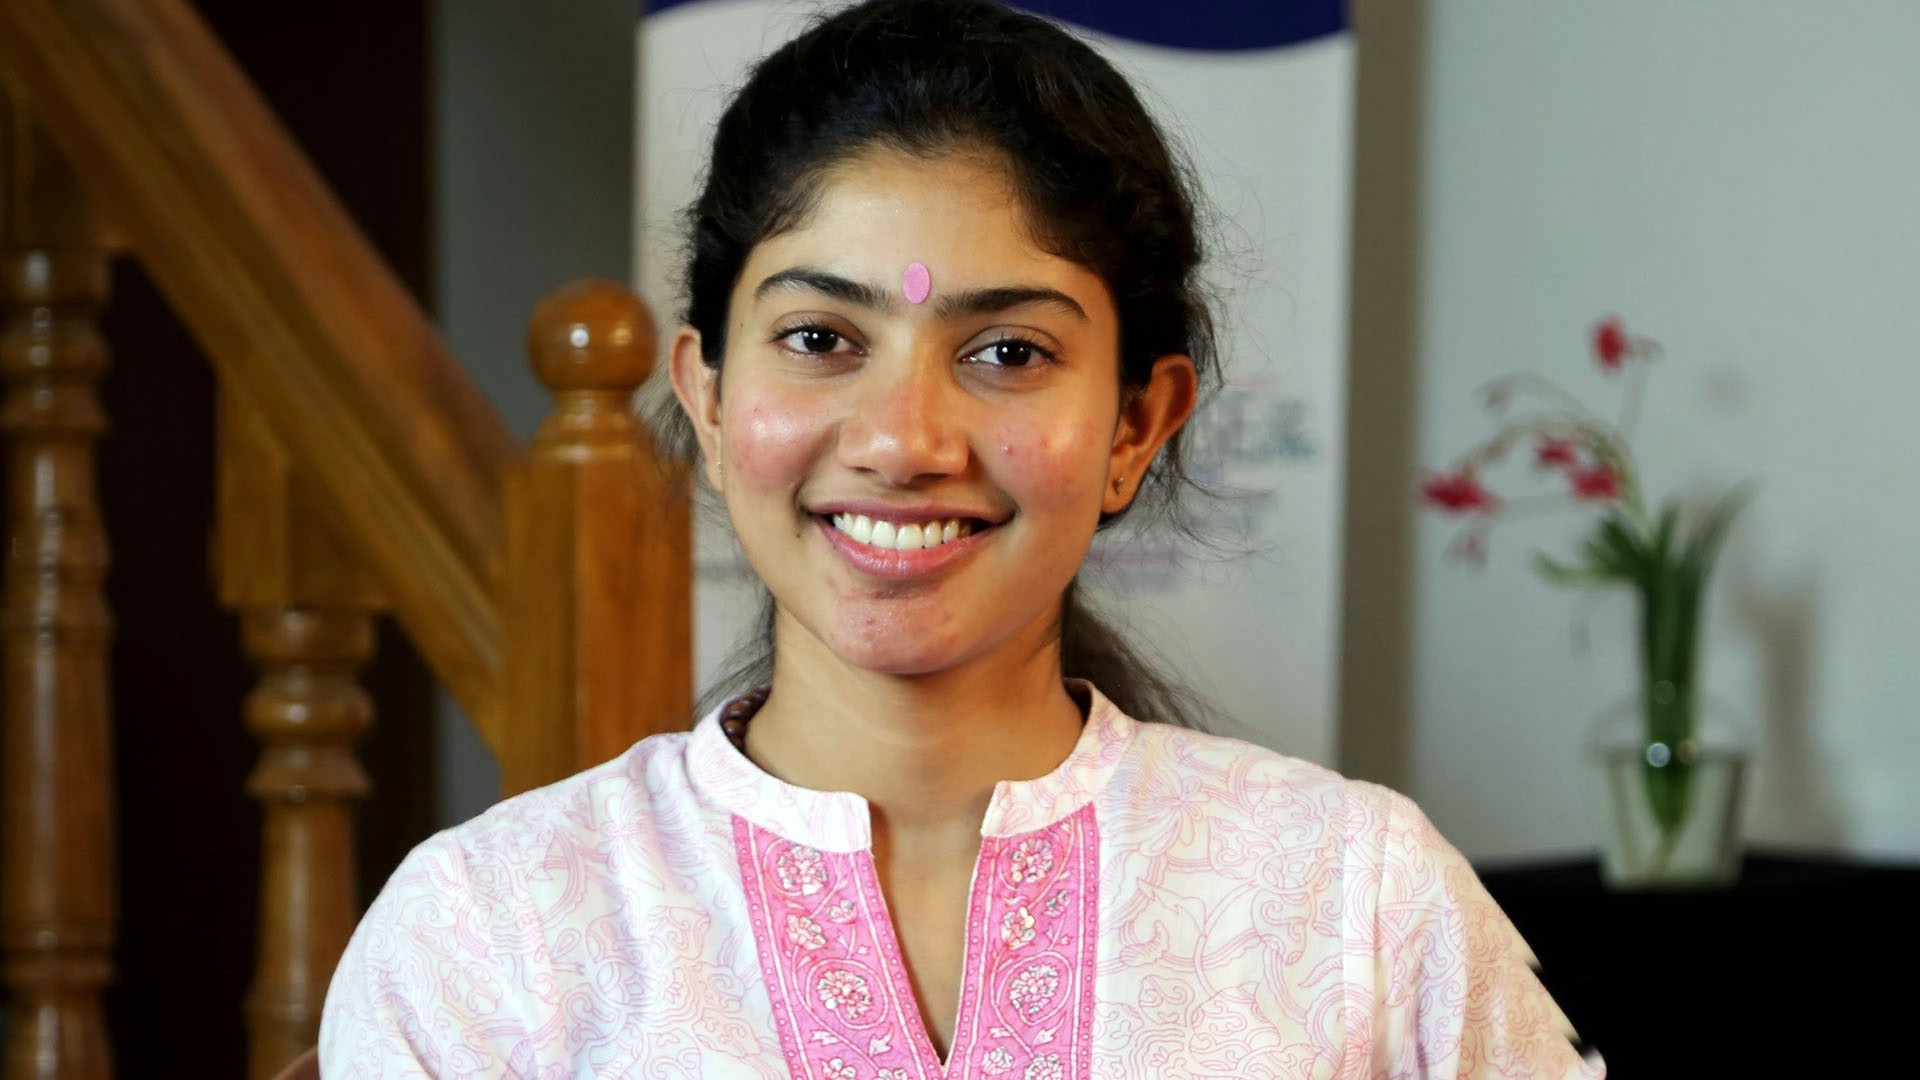 beautiful sai pallavi nice look desktop mobile background hd free images